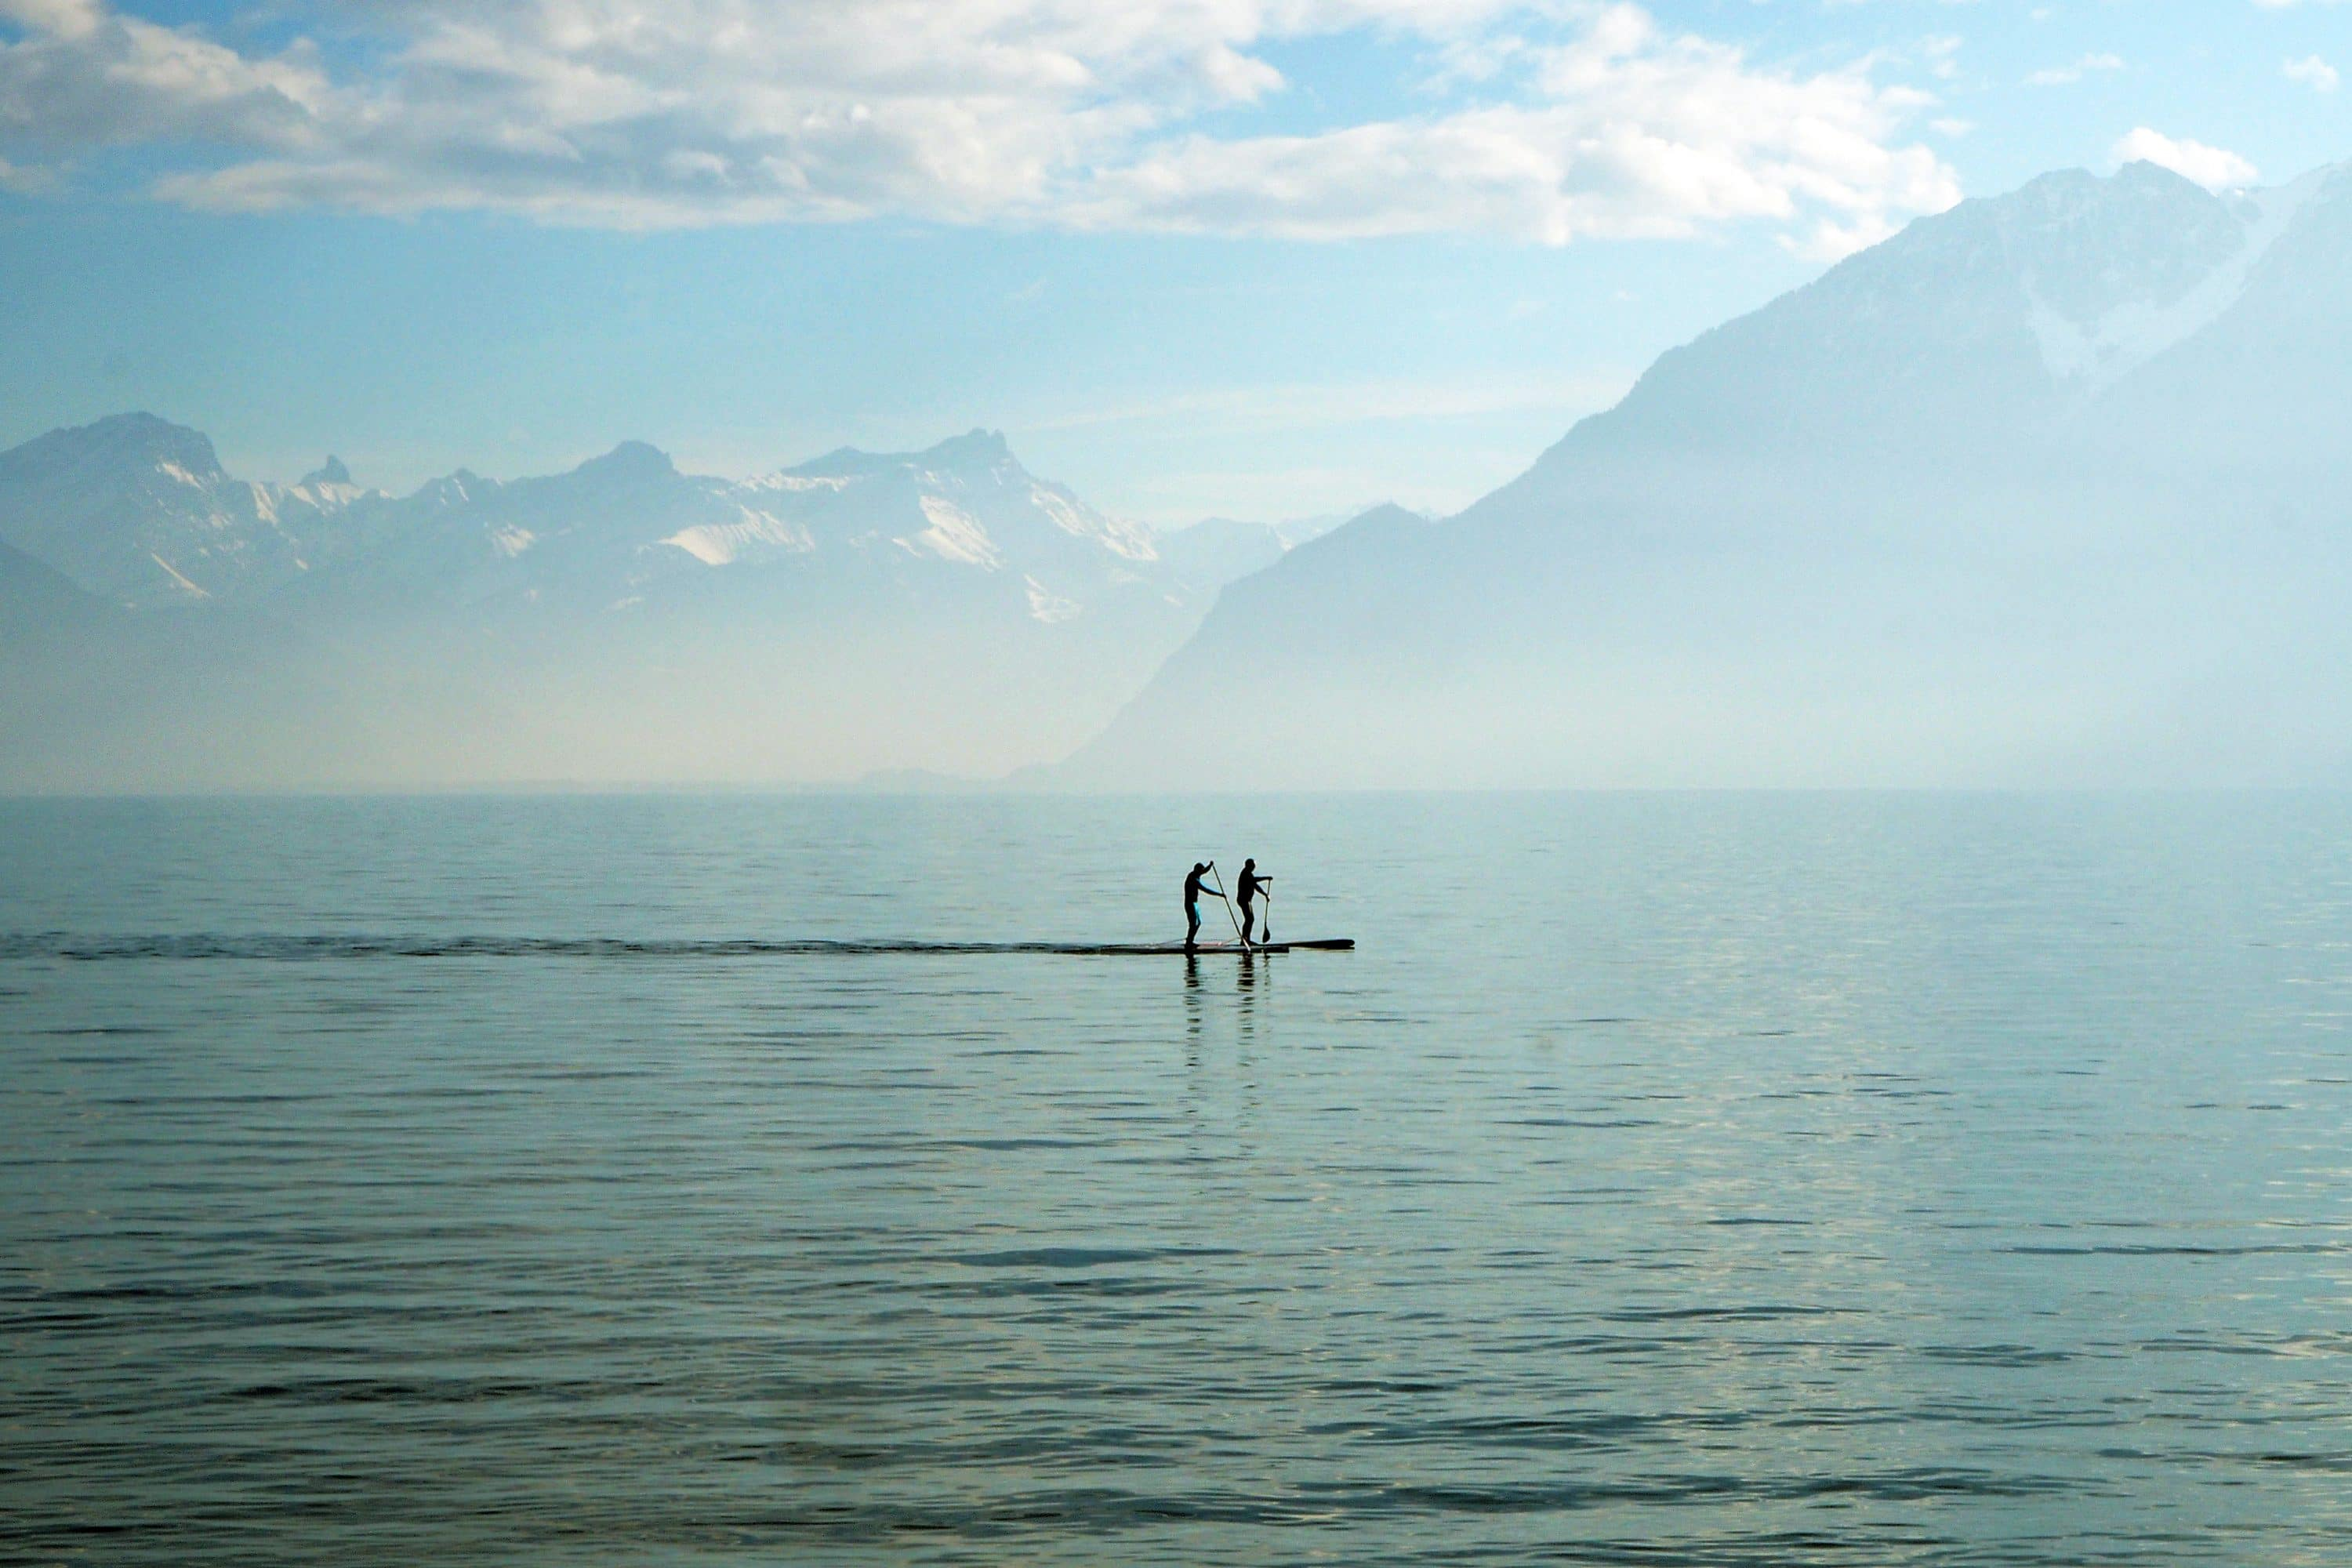 Stand-up paddle boarding on Lake Geneva